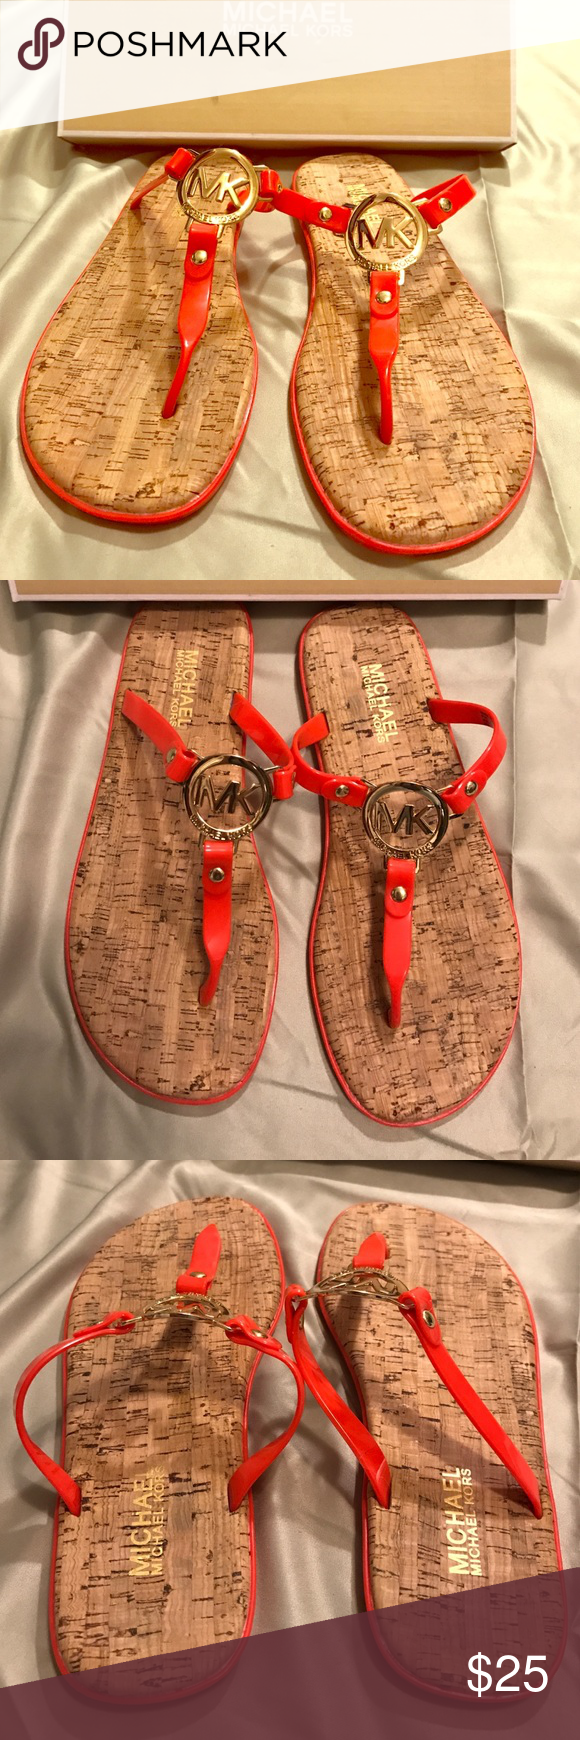 NEW Michael Kors Cork Sandals Michael Kors sandals, red jelly with cork. Price is non-negotiable. Come with box. MICHAEL Michael Kors Shoes Sandals